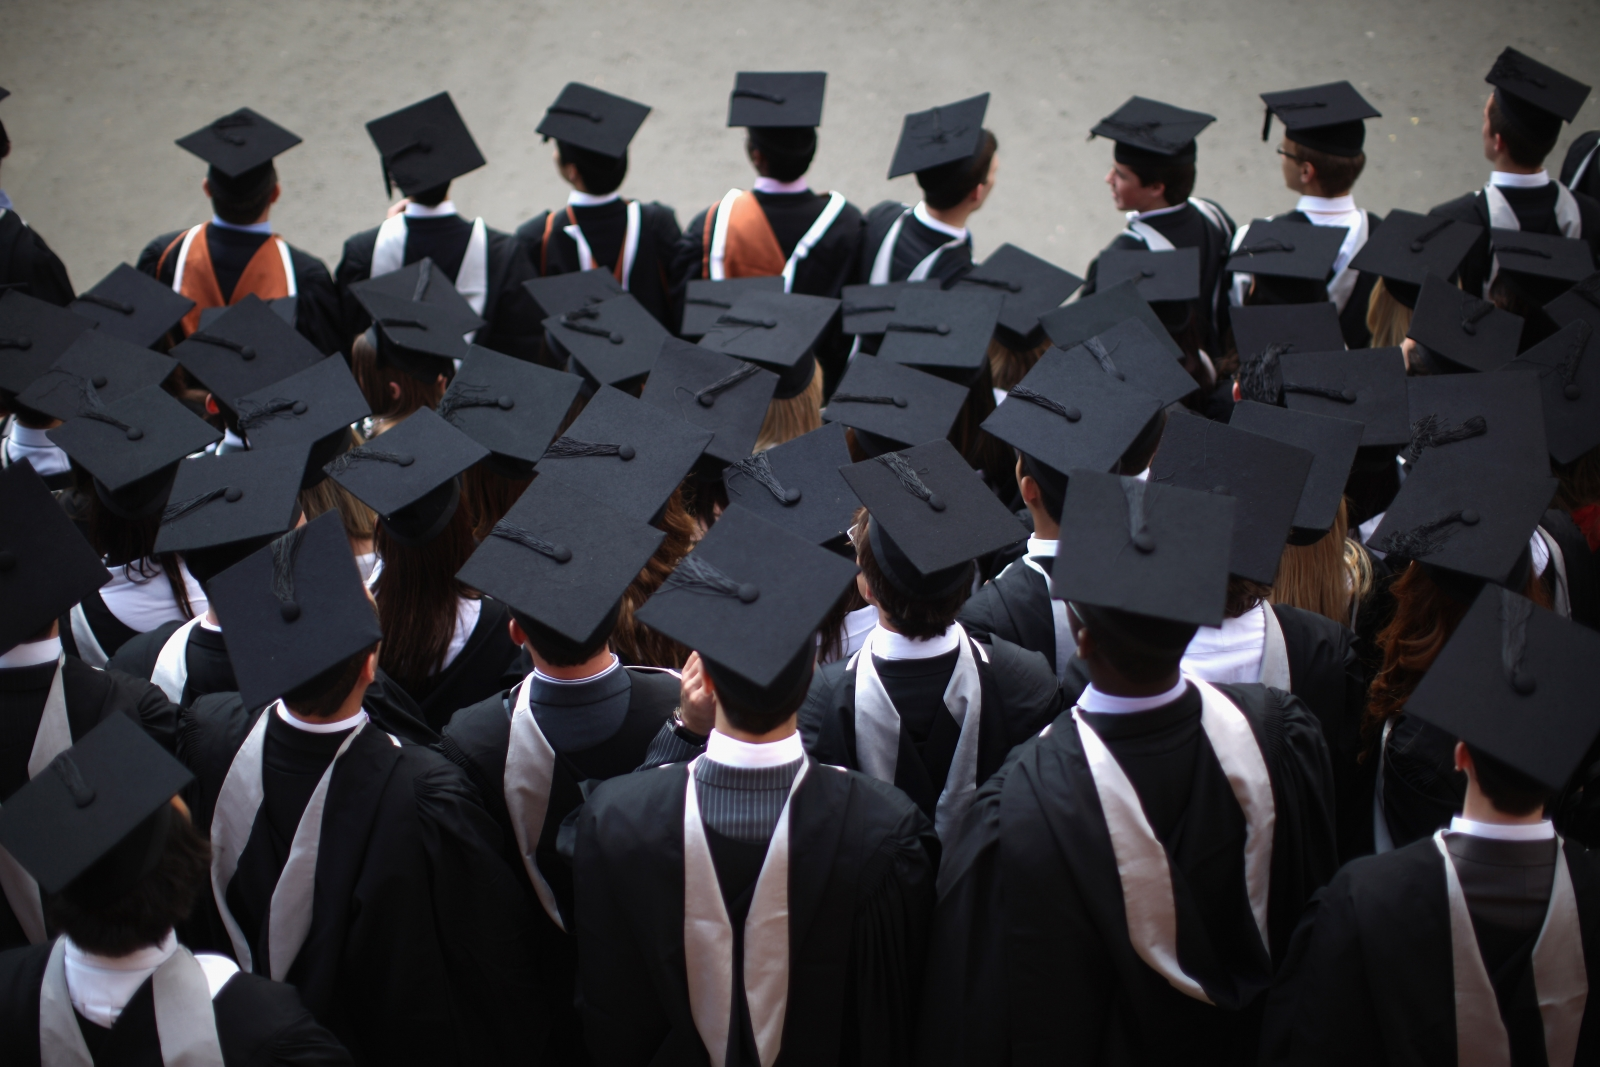 Graduate salaries fail to keep pace as student debt soars